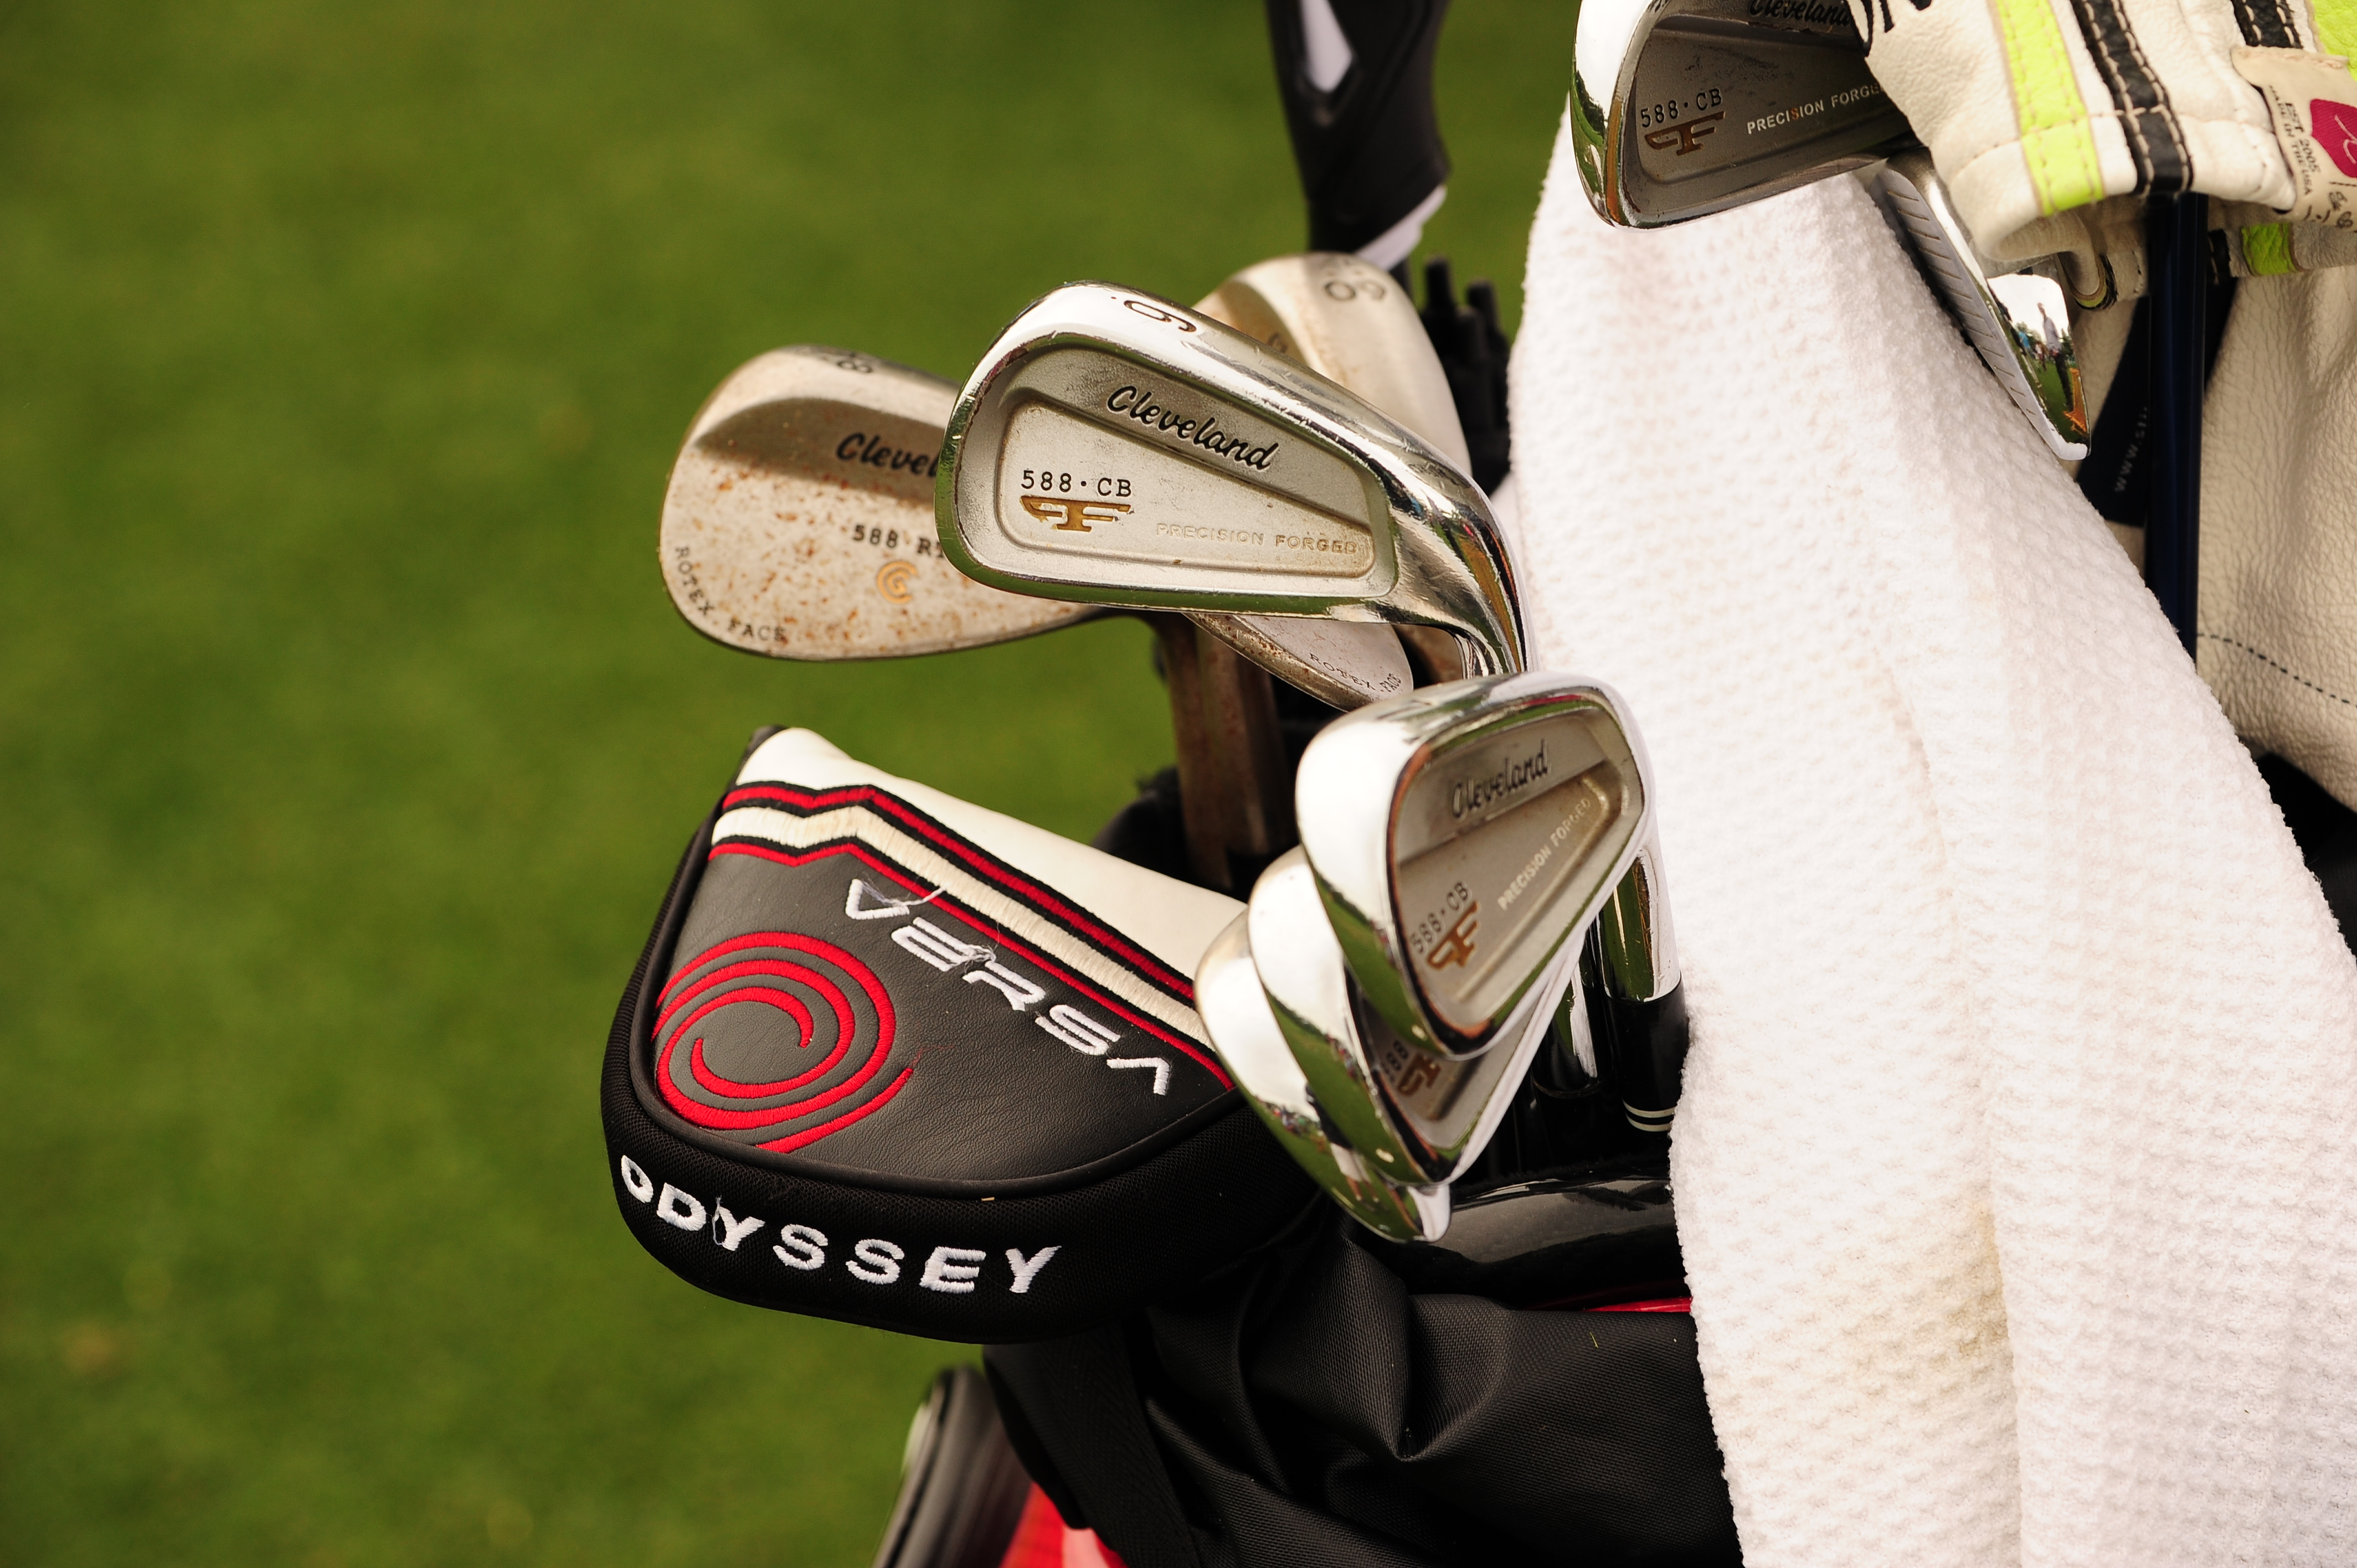 Cleveland player Michael Putnam plays 588 CB forged irons, 588 RTX wedges and an Odyssey Versa putter.